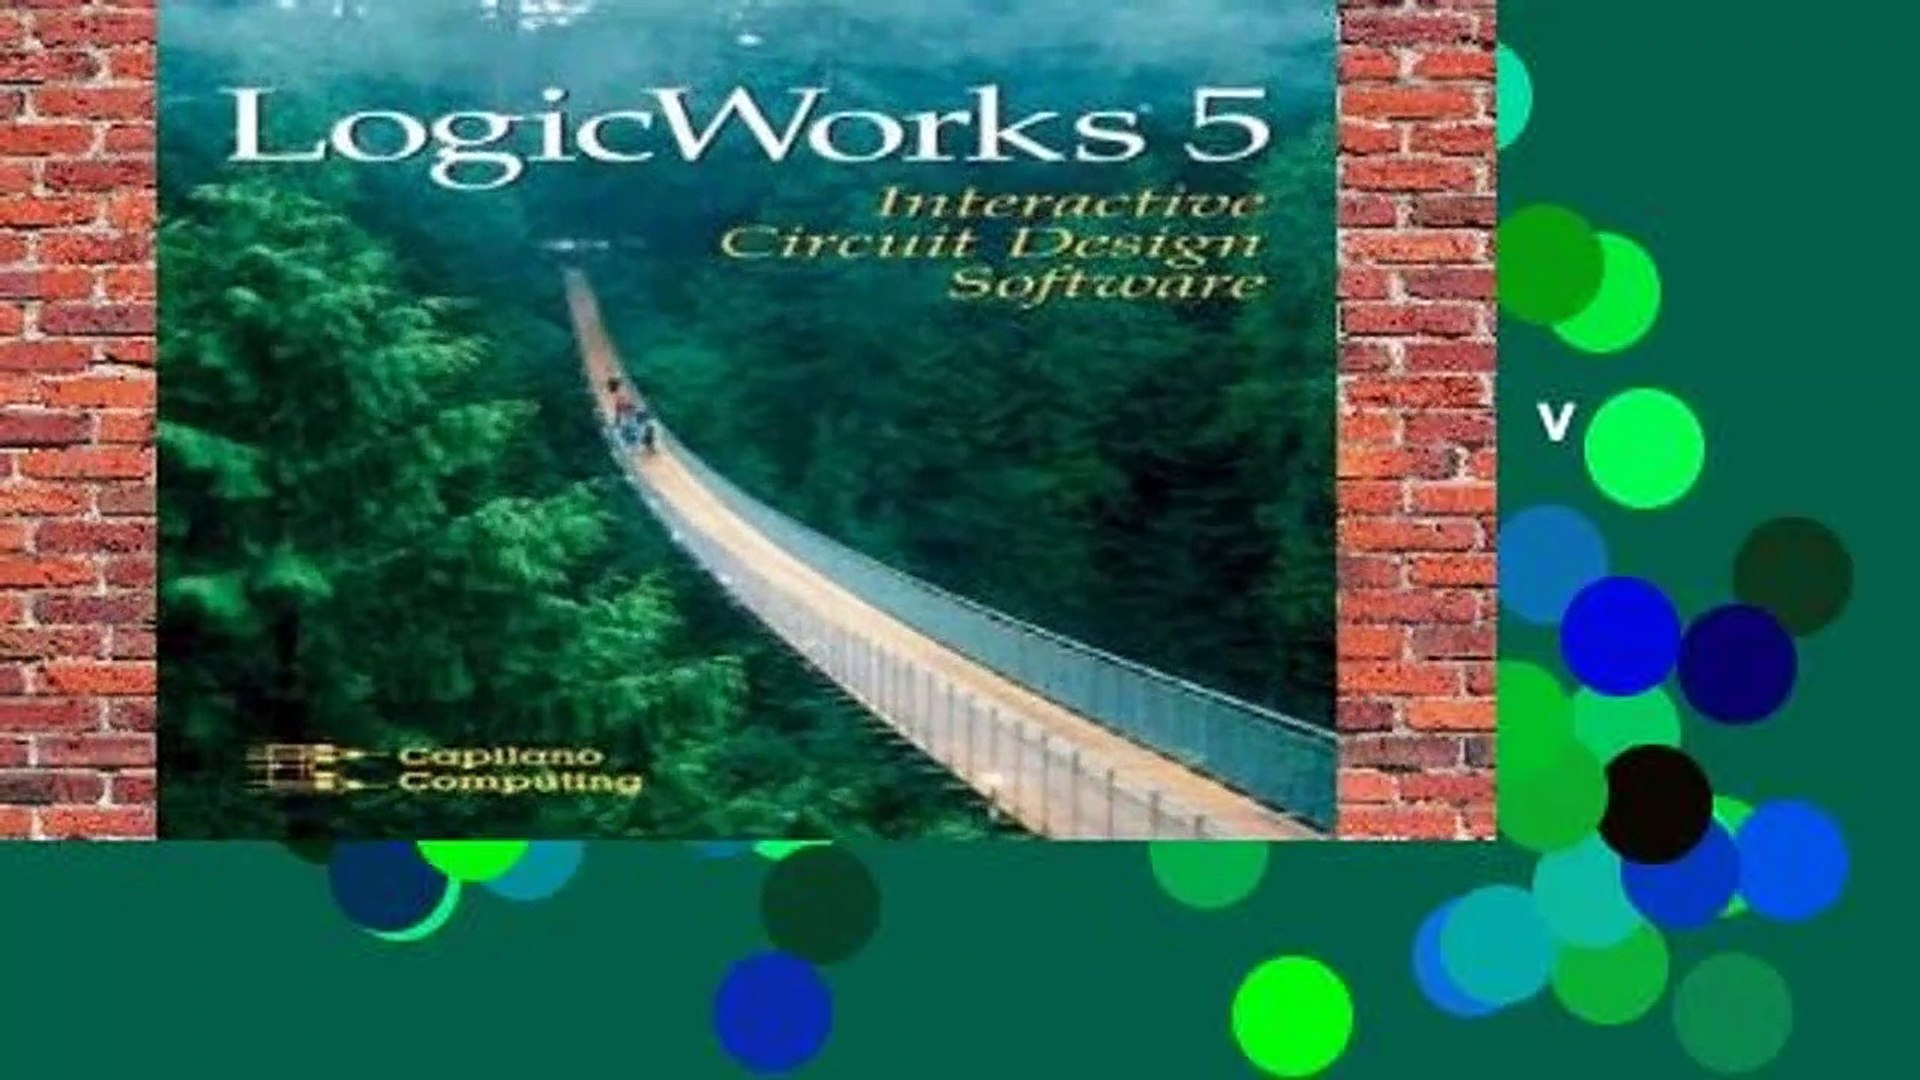 Trial New Releases Logicworks 5 Interactive Software By X Capilano Computing Video Dailymotion